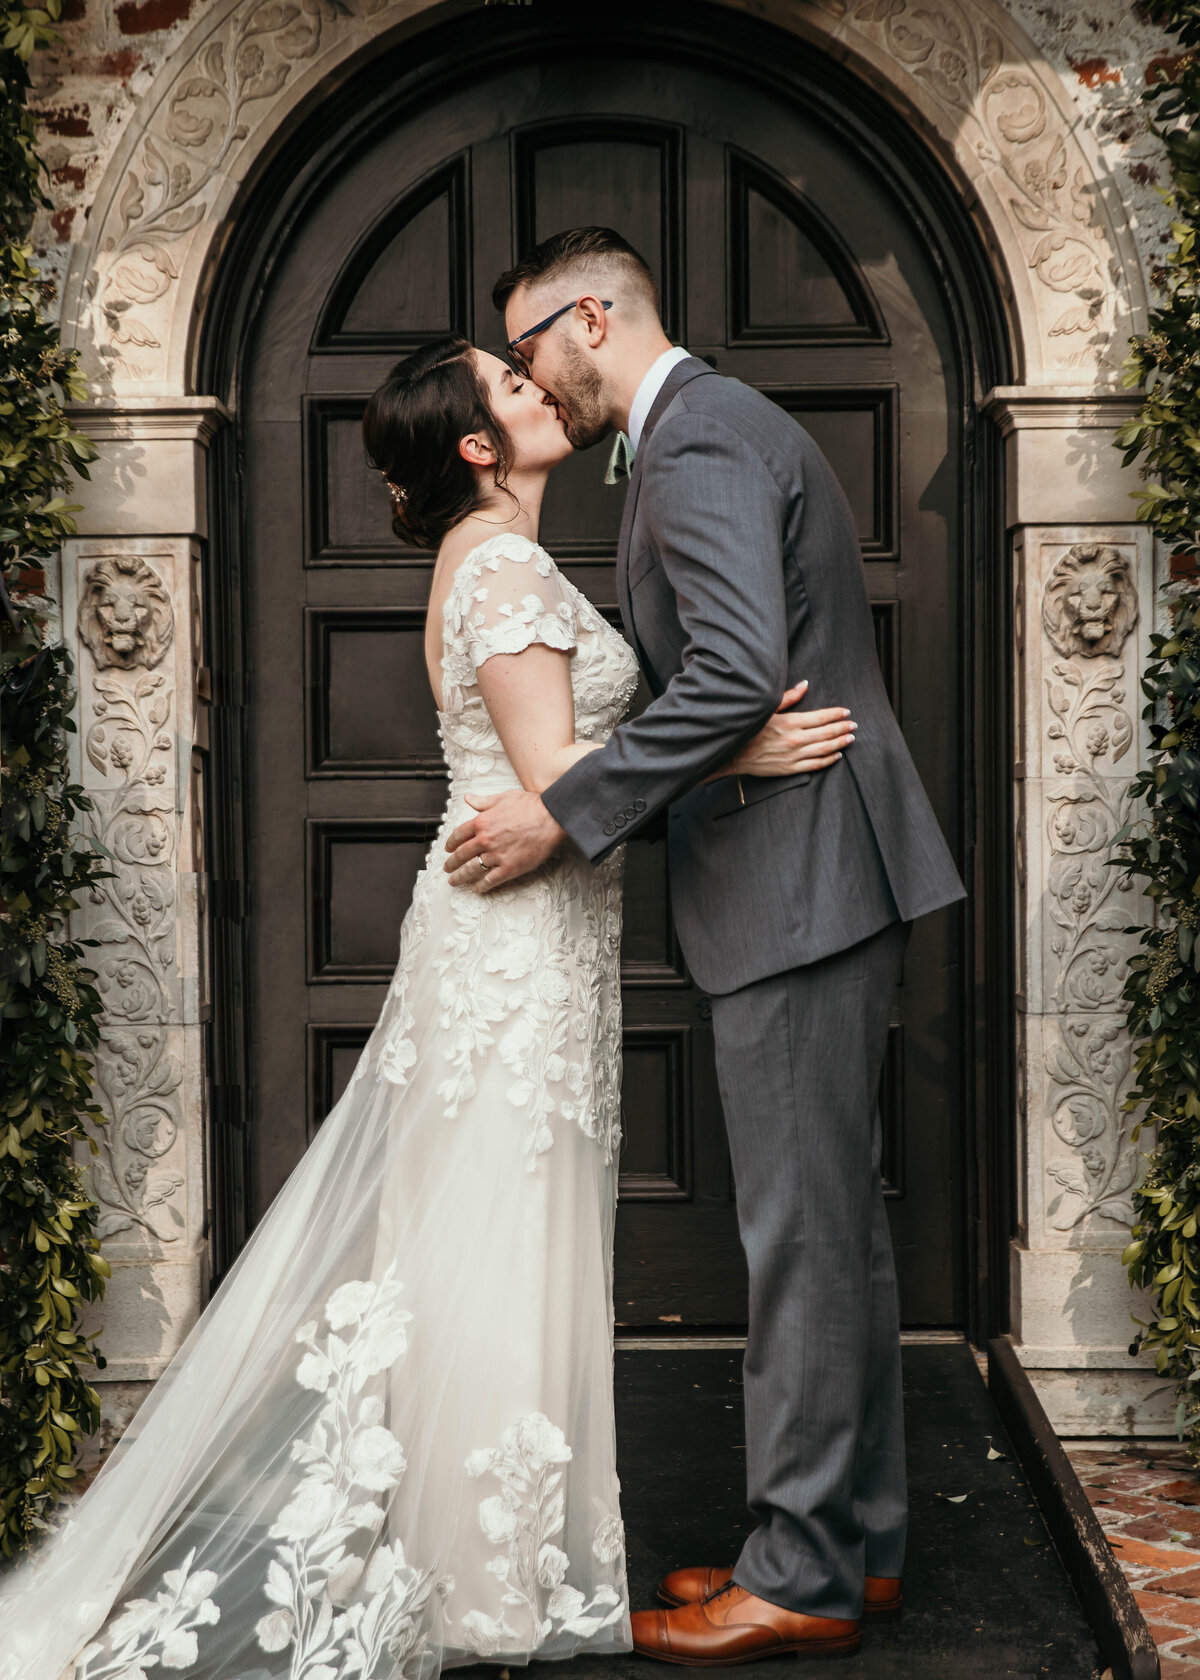 A photograph of the bride and groom romantically kissing as they embrace, standing before a vintage wooden arched door, showing the bride's beautiful dress and train